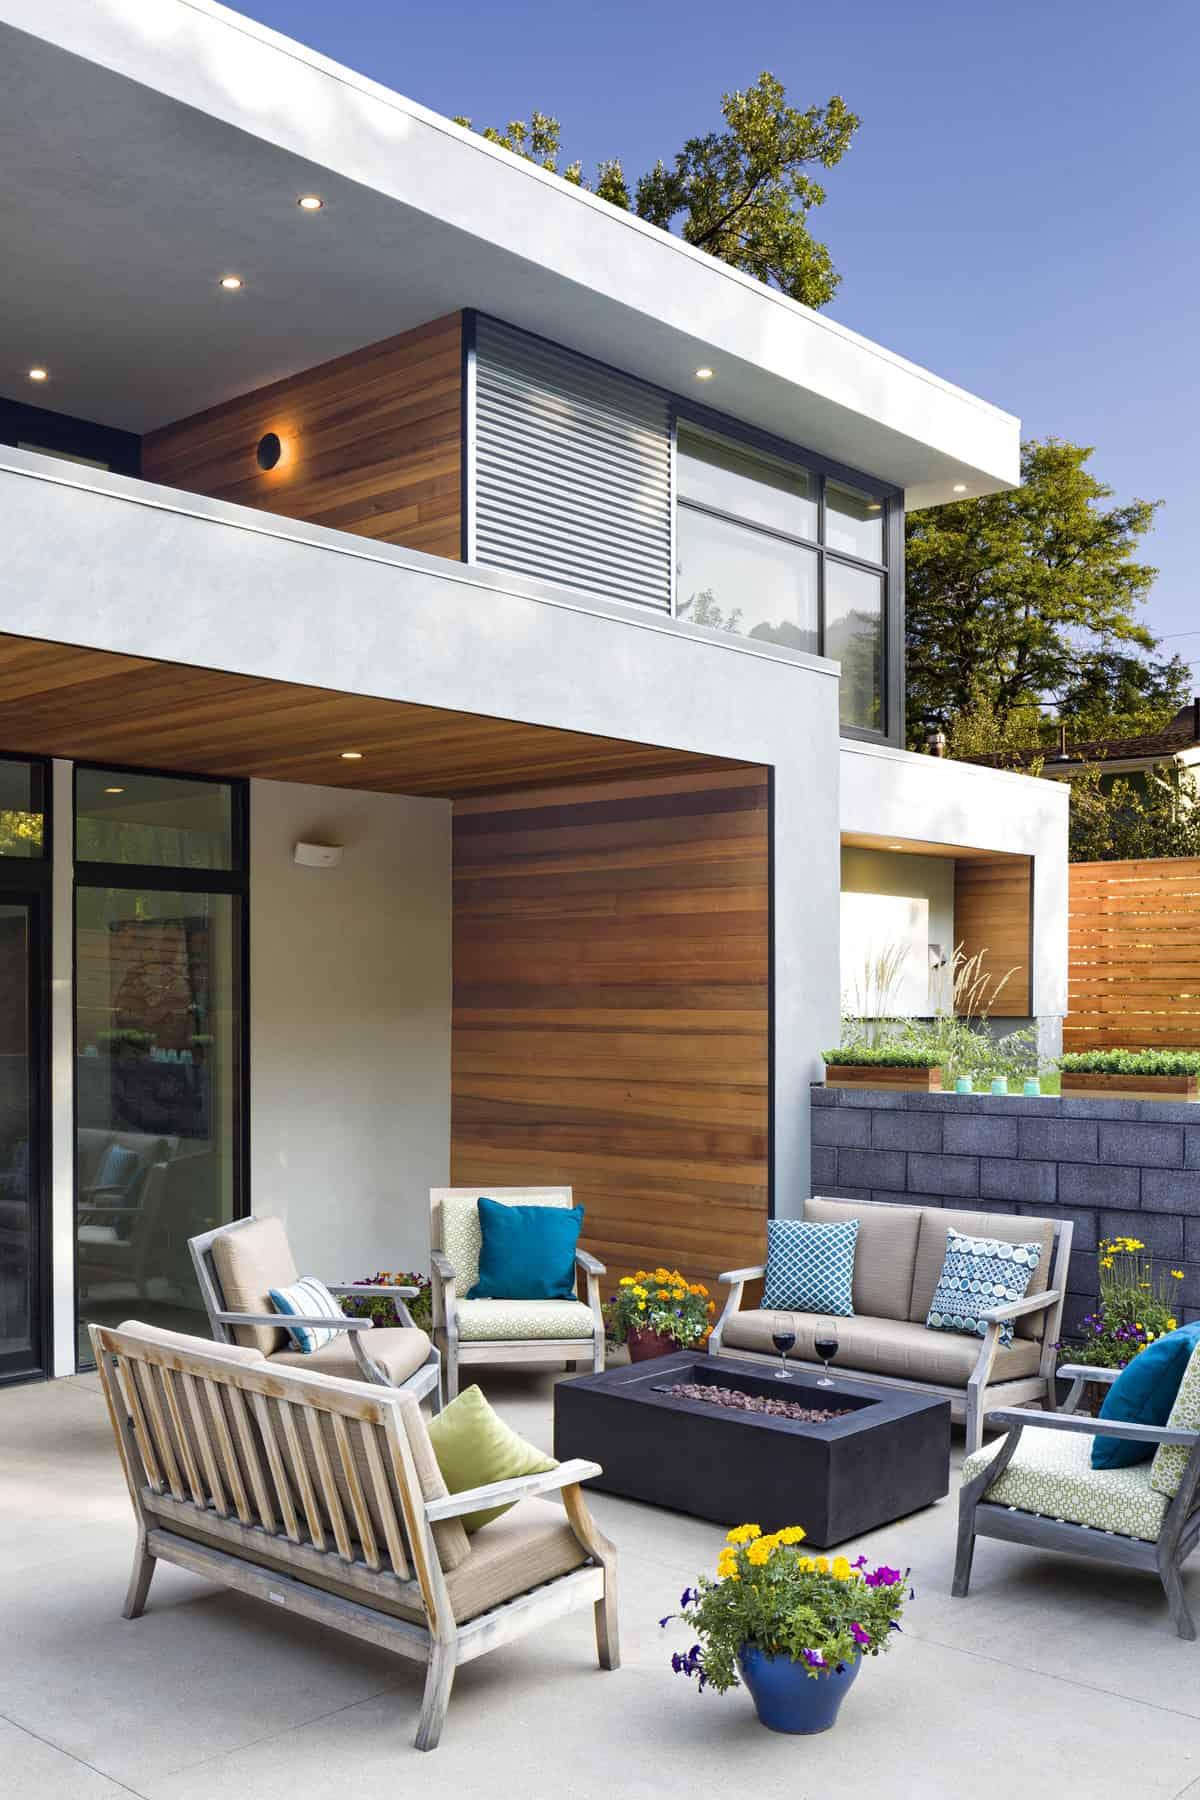 Contemporary Collaboration - Rear Exterior Patio Vignette Photo - Melton Design Build